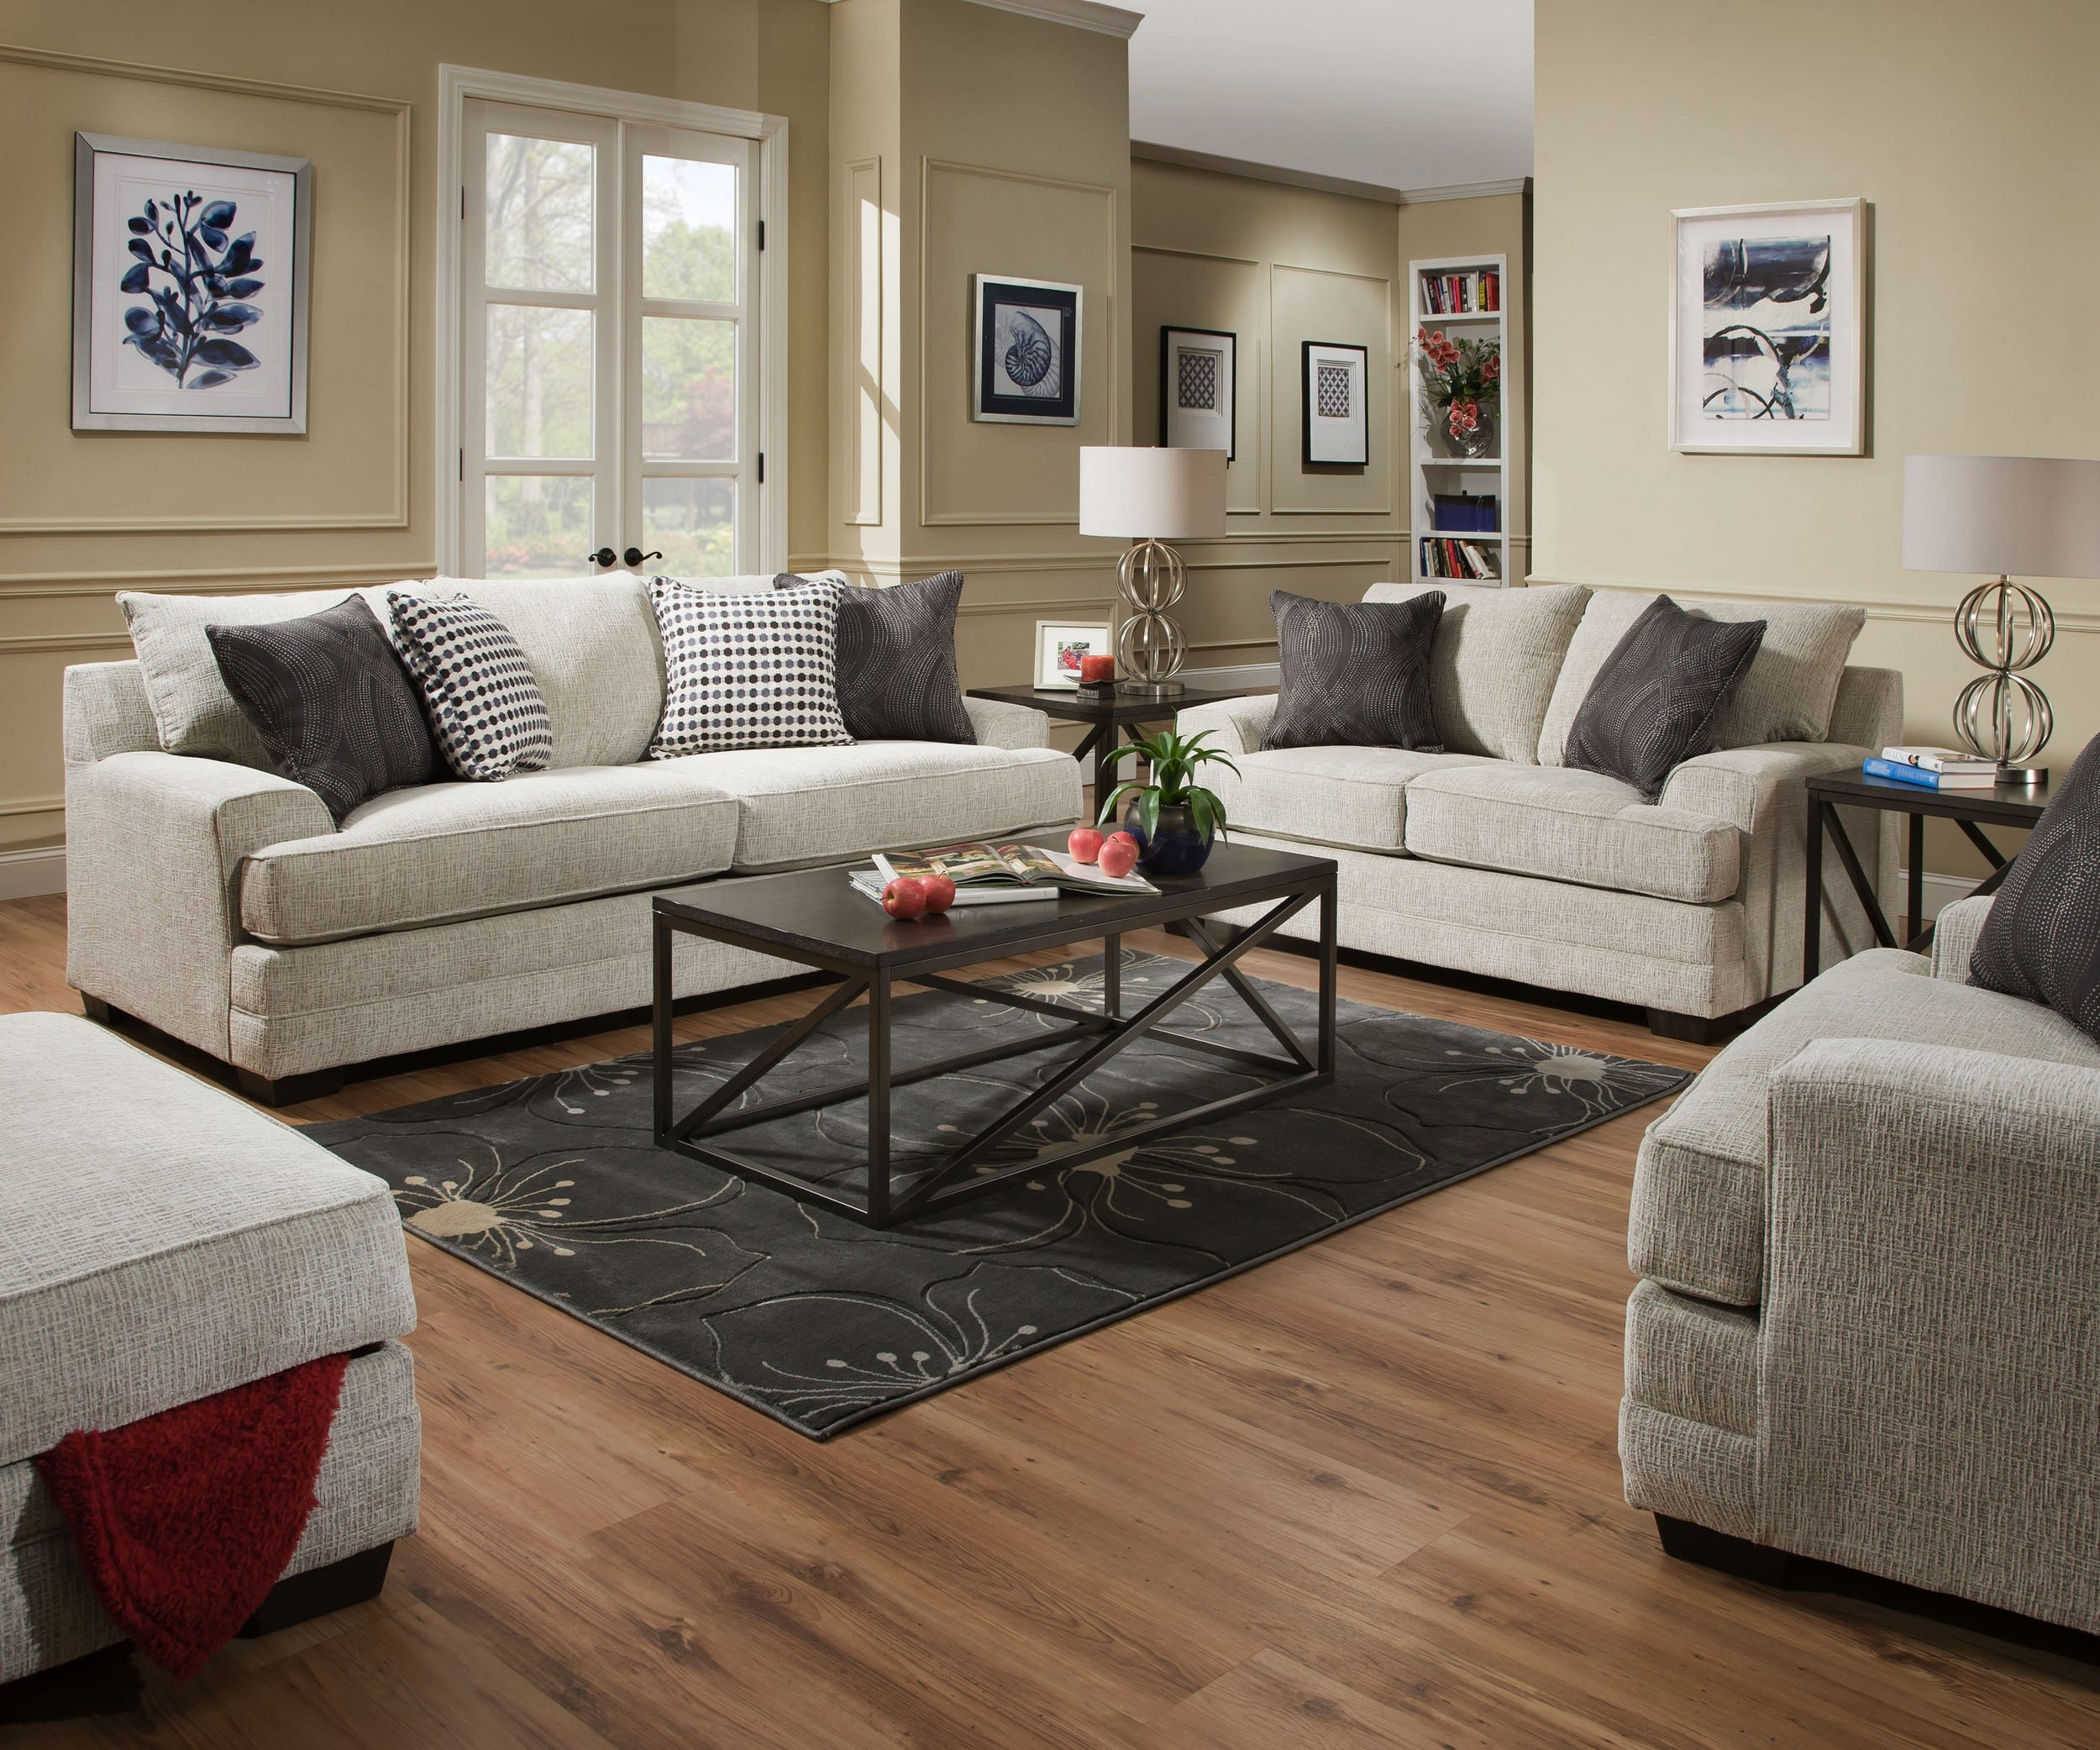 Simmons Upholstery 6548br 03 Dillon Driftwood 6548br 02 Dillon Driftwood 6548br 01 Dillon Driftwood regarding 3 Piece Living Room Set Cheap